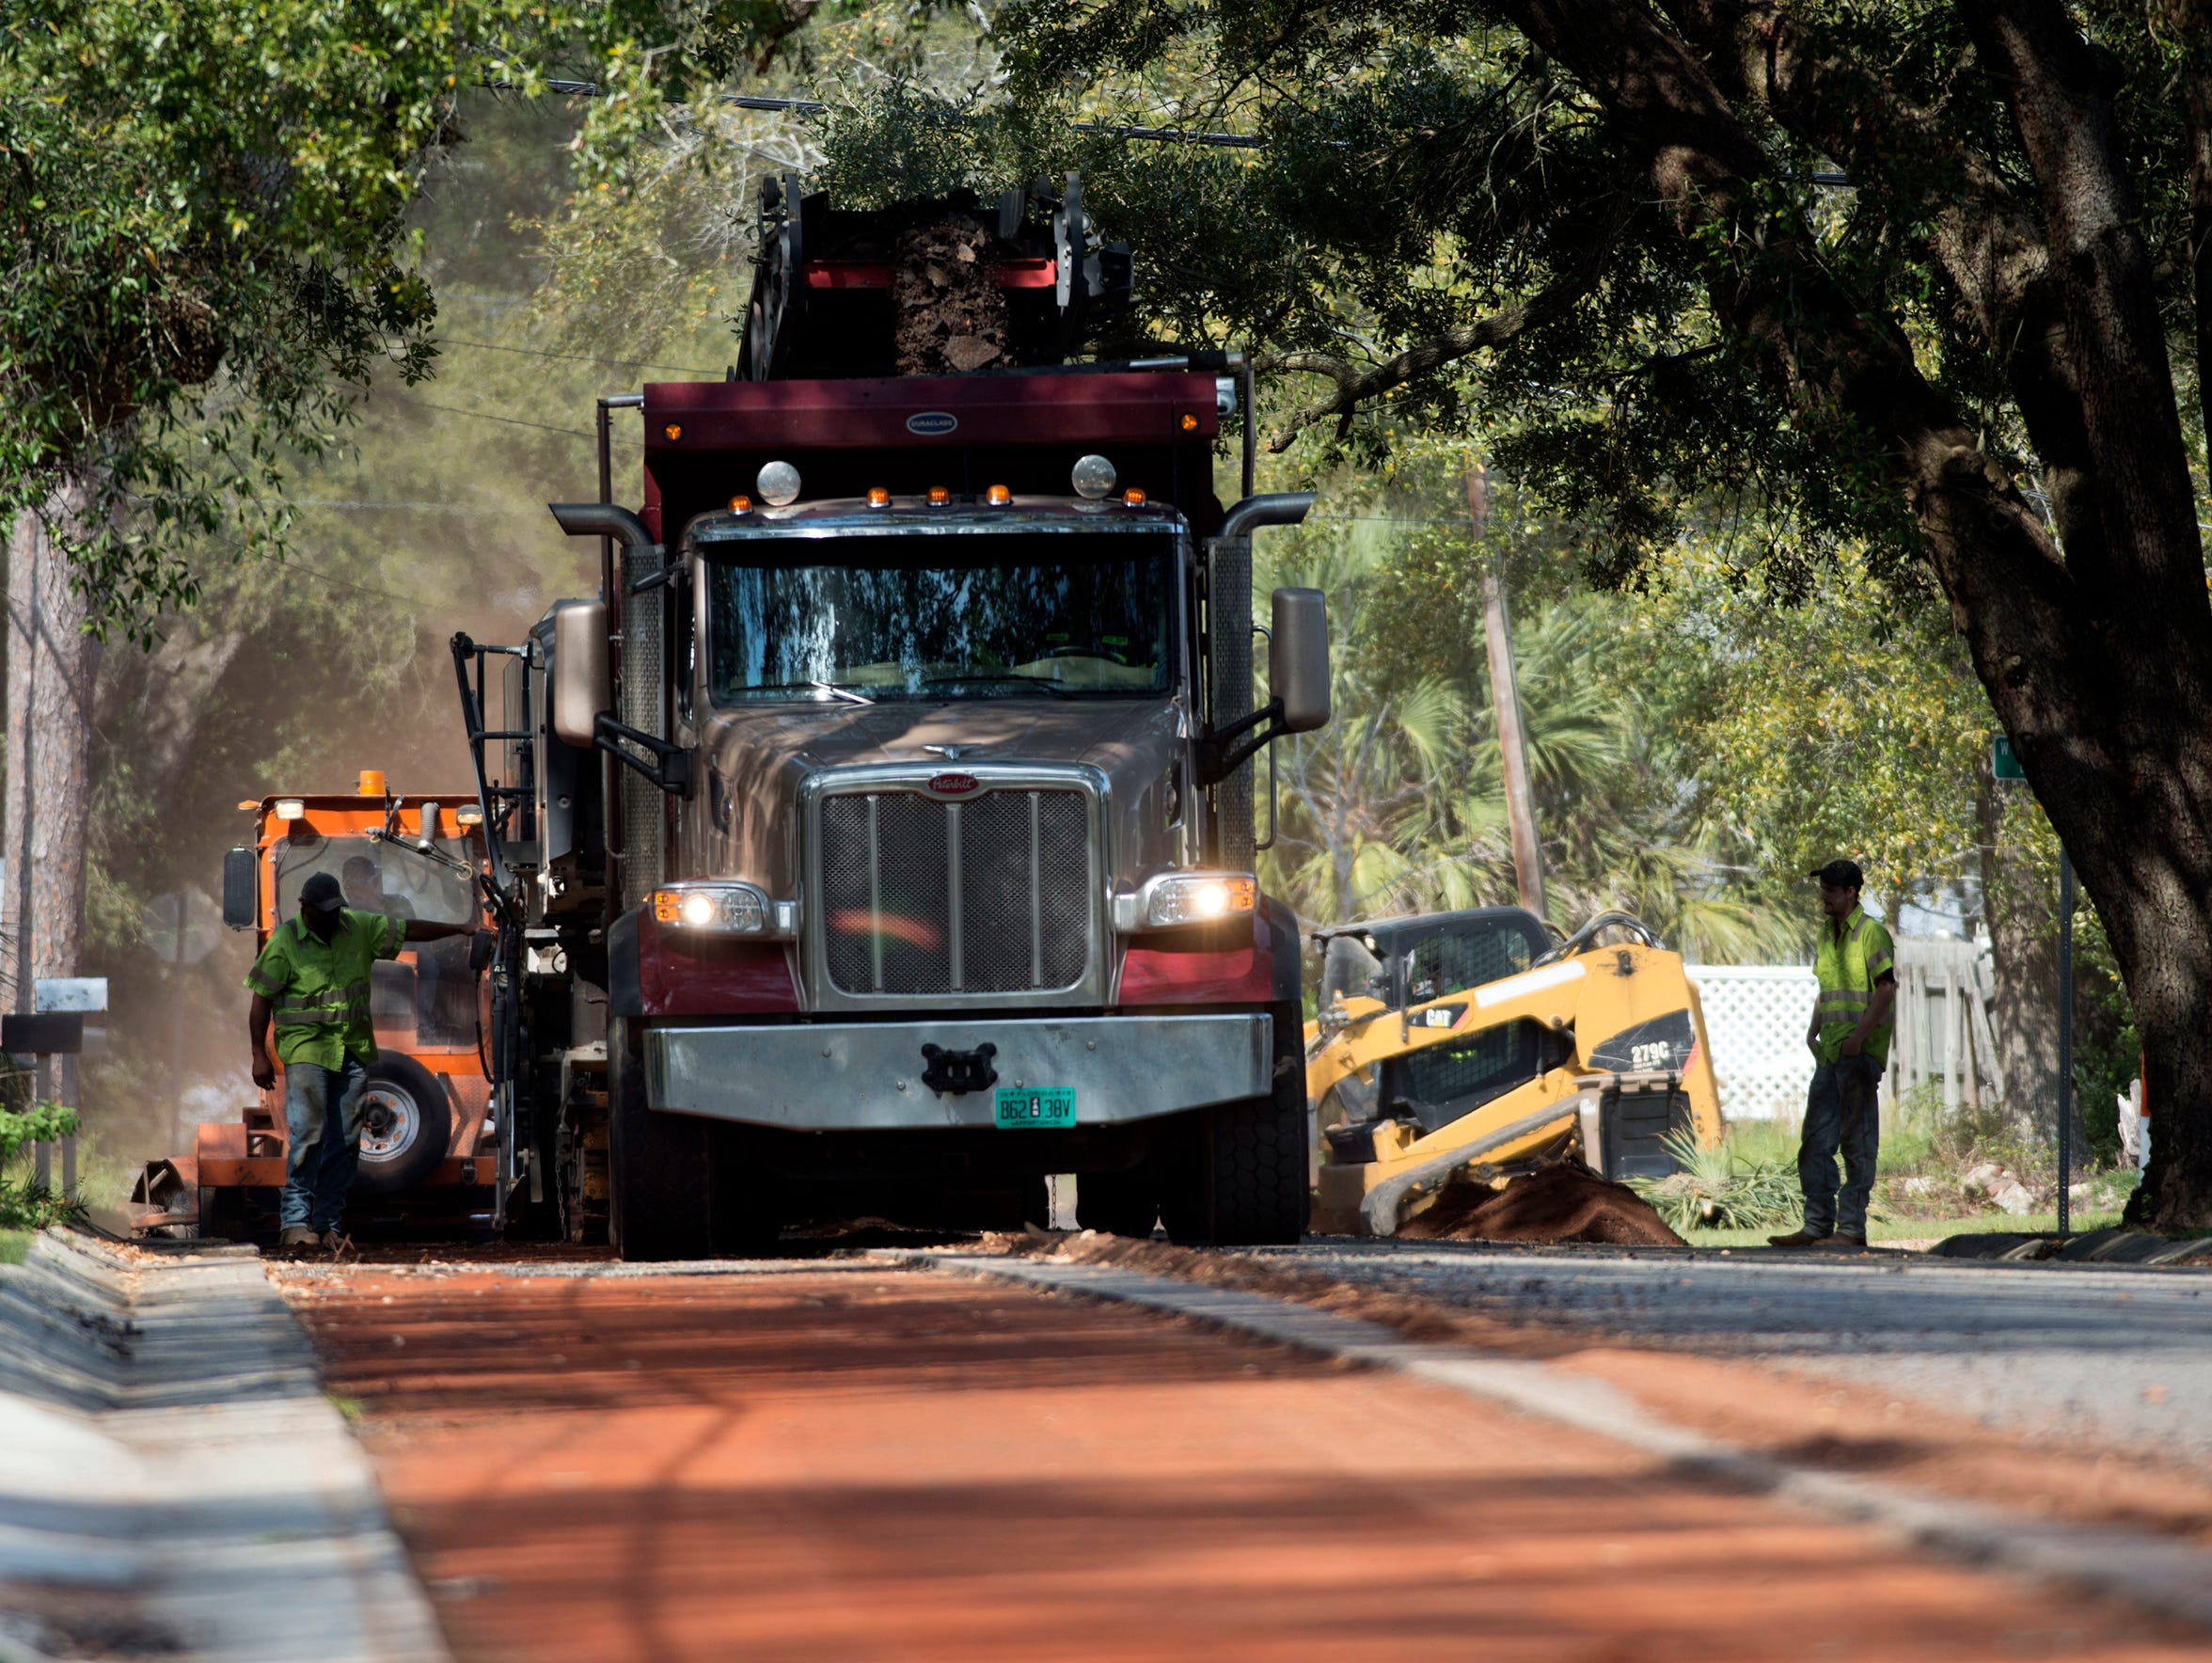 Milling work on North P Street, between West Wright